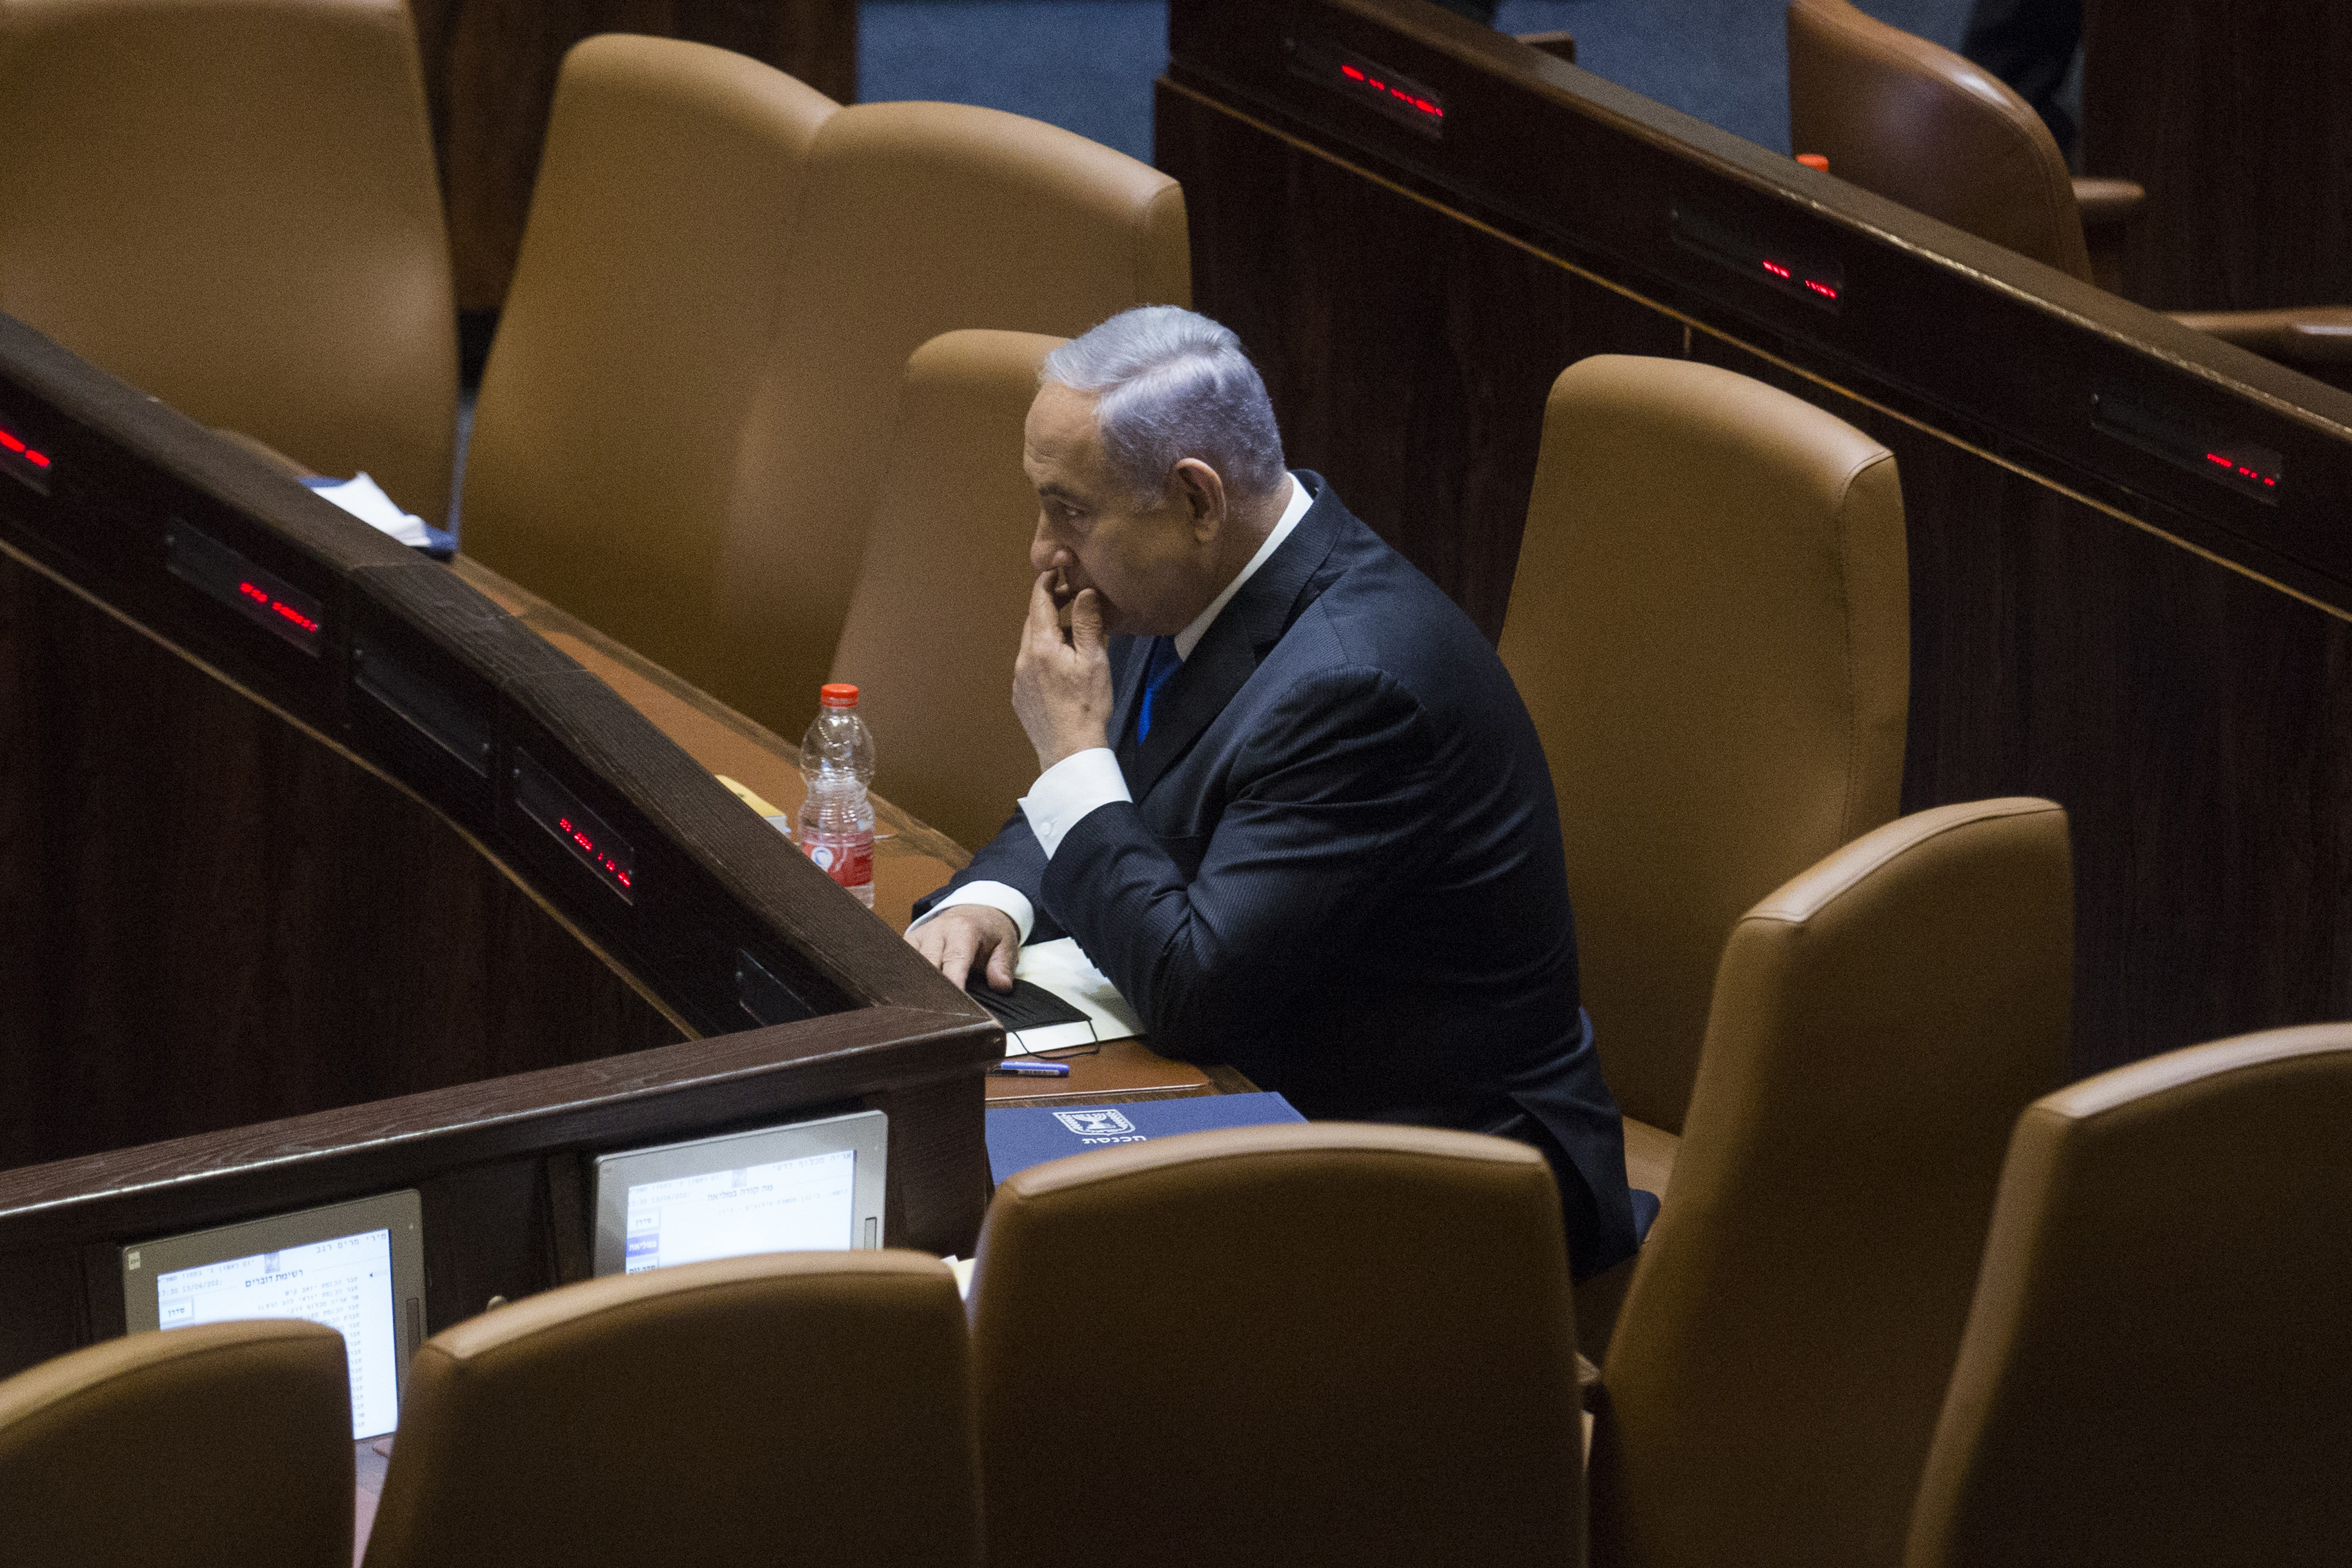 Benjamin Netanyahu Feels 'Cheated,' Won't Give 'the Slightest Legitimacy' to New Government, Lawmaker Says